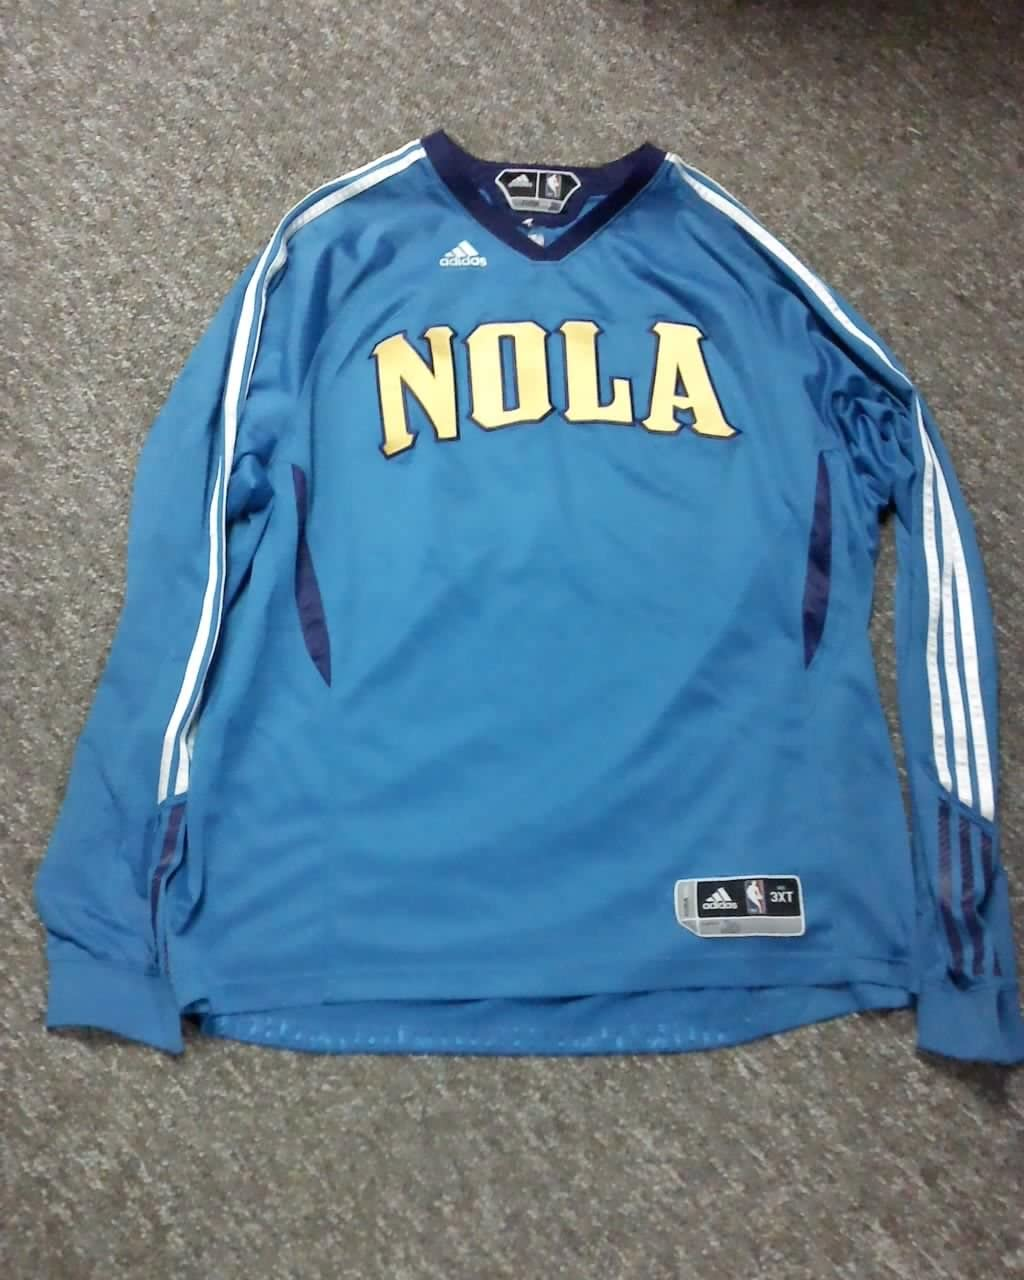 Quincy Pondexter New Orleans Hornets 2010-2011 Game Worn Adidas Shooting Shirt